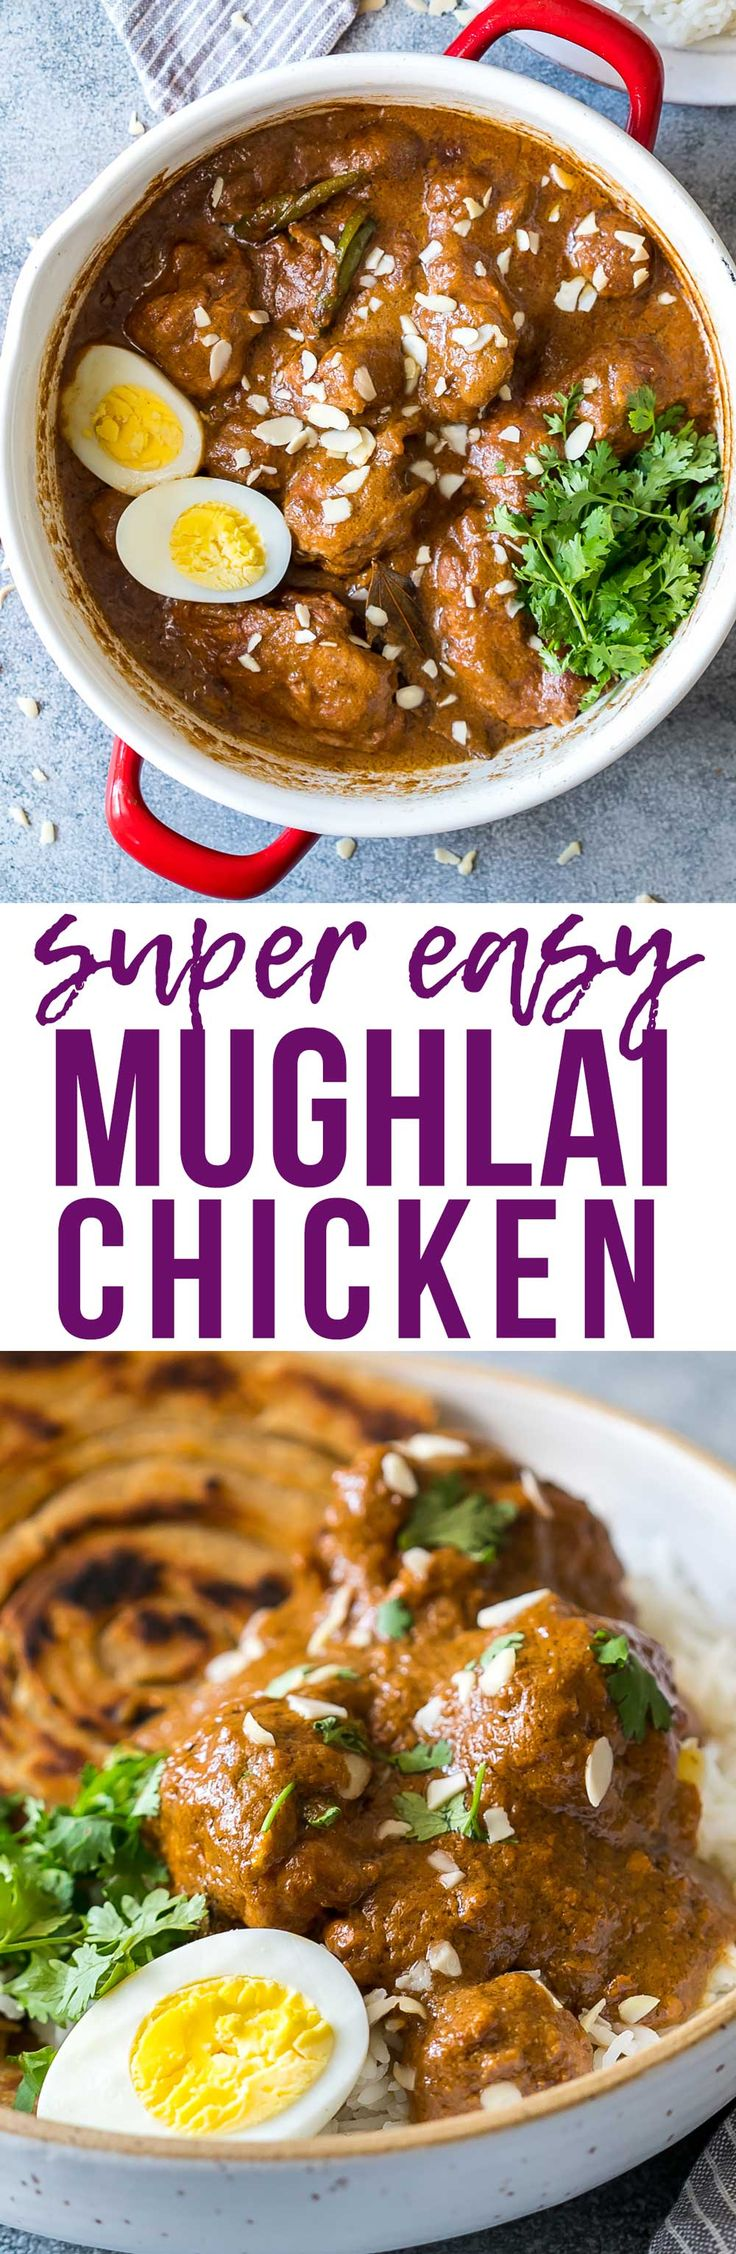 Mughlai Chicken is a restaurant style, north Indian recipe with a creamy, dark brown onion gravy that will have you licking the plate! Serve it with parathas, biryani or jeera rice, and feel free to substitute paneer if you are vegetarian.  via @my_foodstory